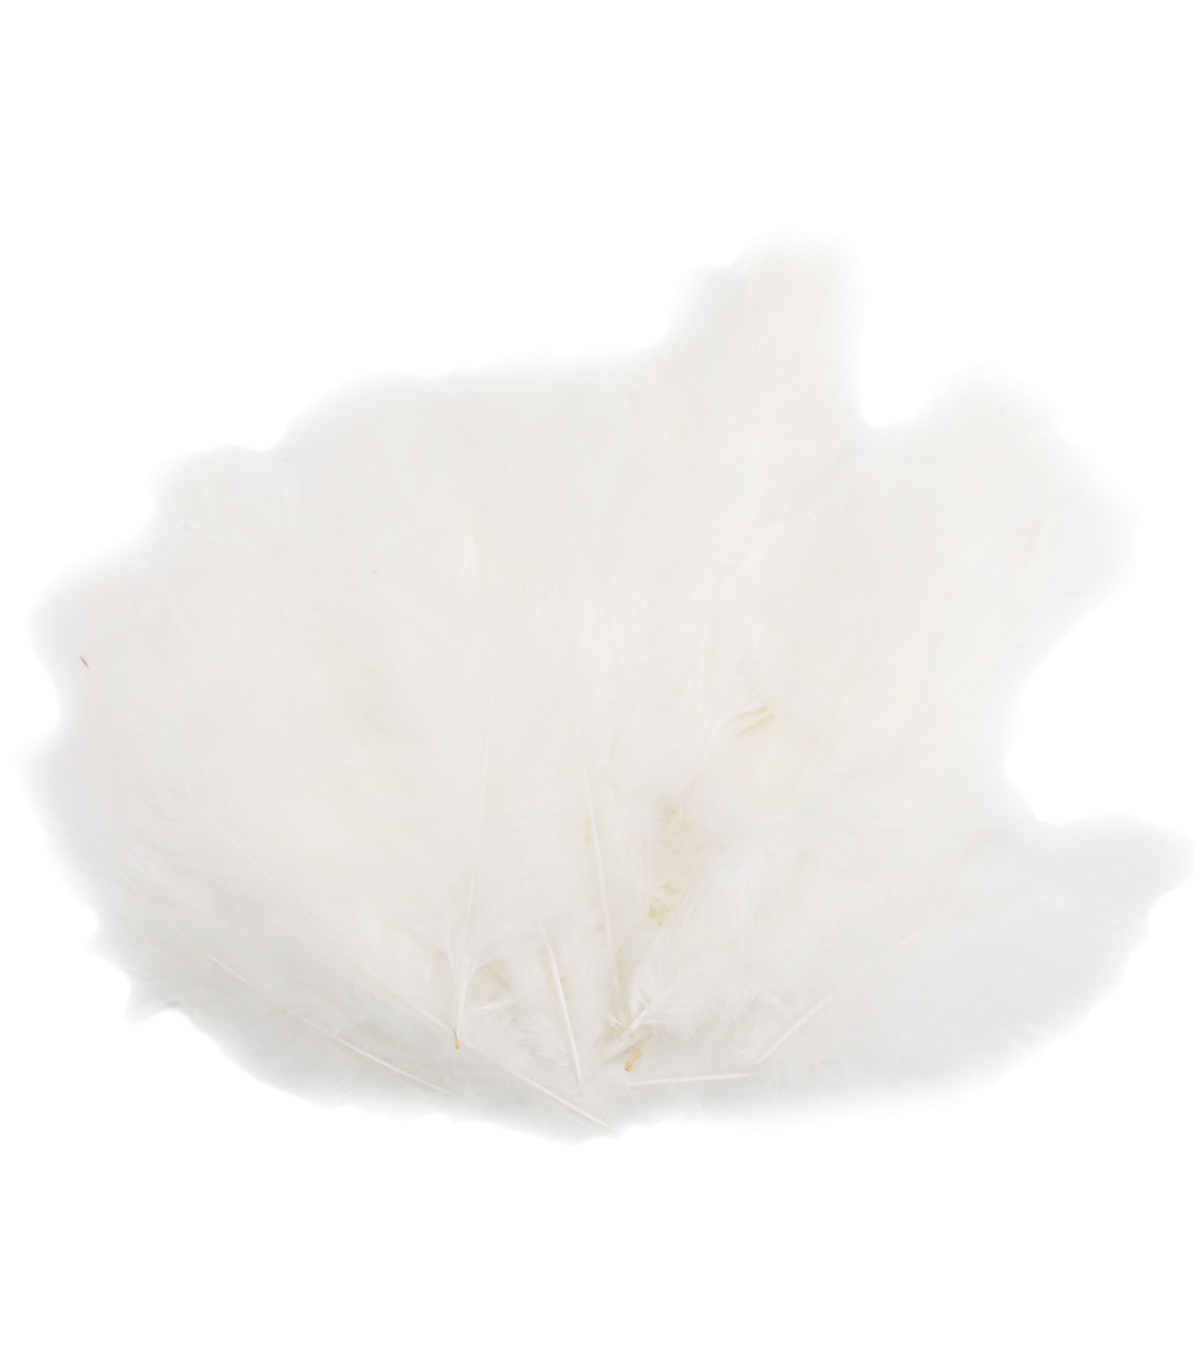 Midwest Design Flat Turkey Feathers 14 Grams-Eggshell